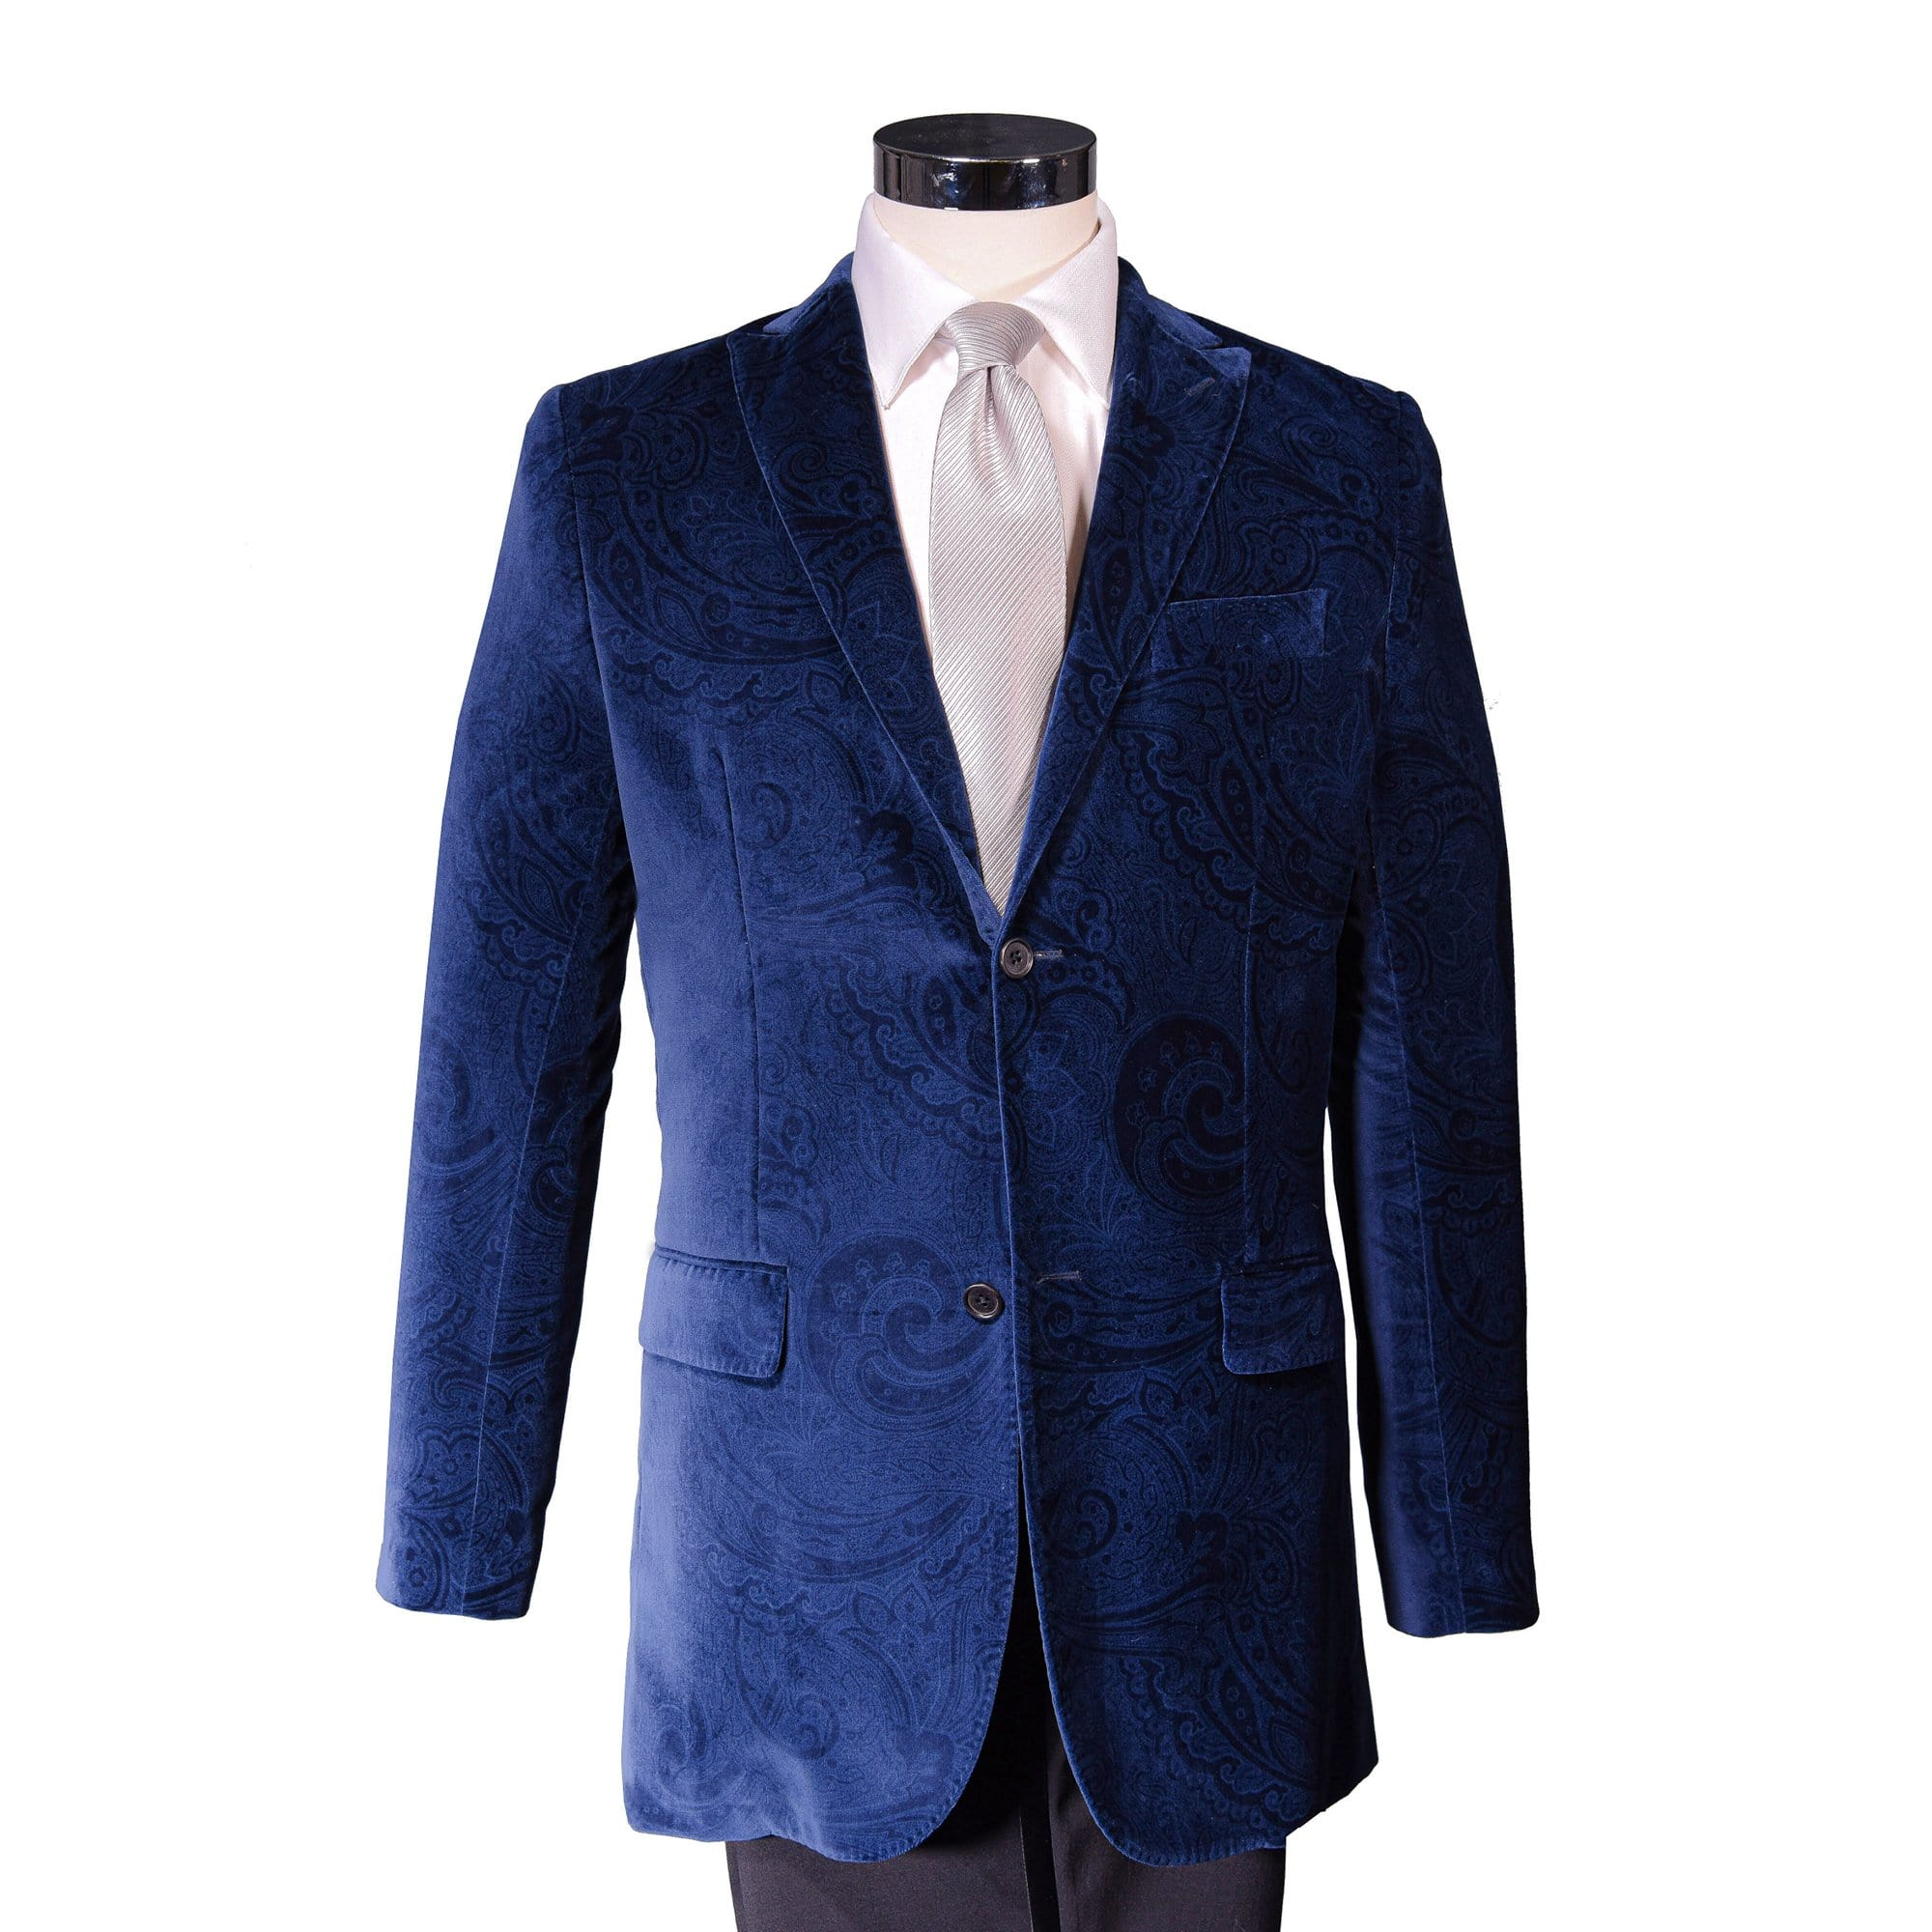 Nightfall Navy Roosevelt Velvet Sport Coat - Haspel Clothing